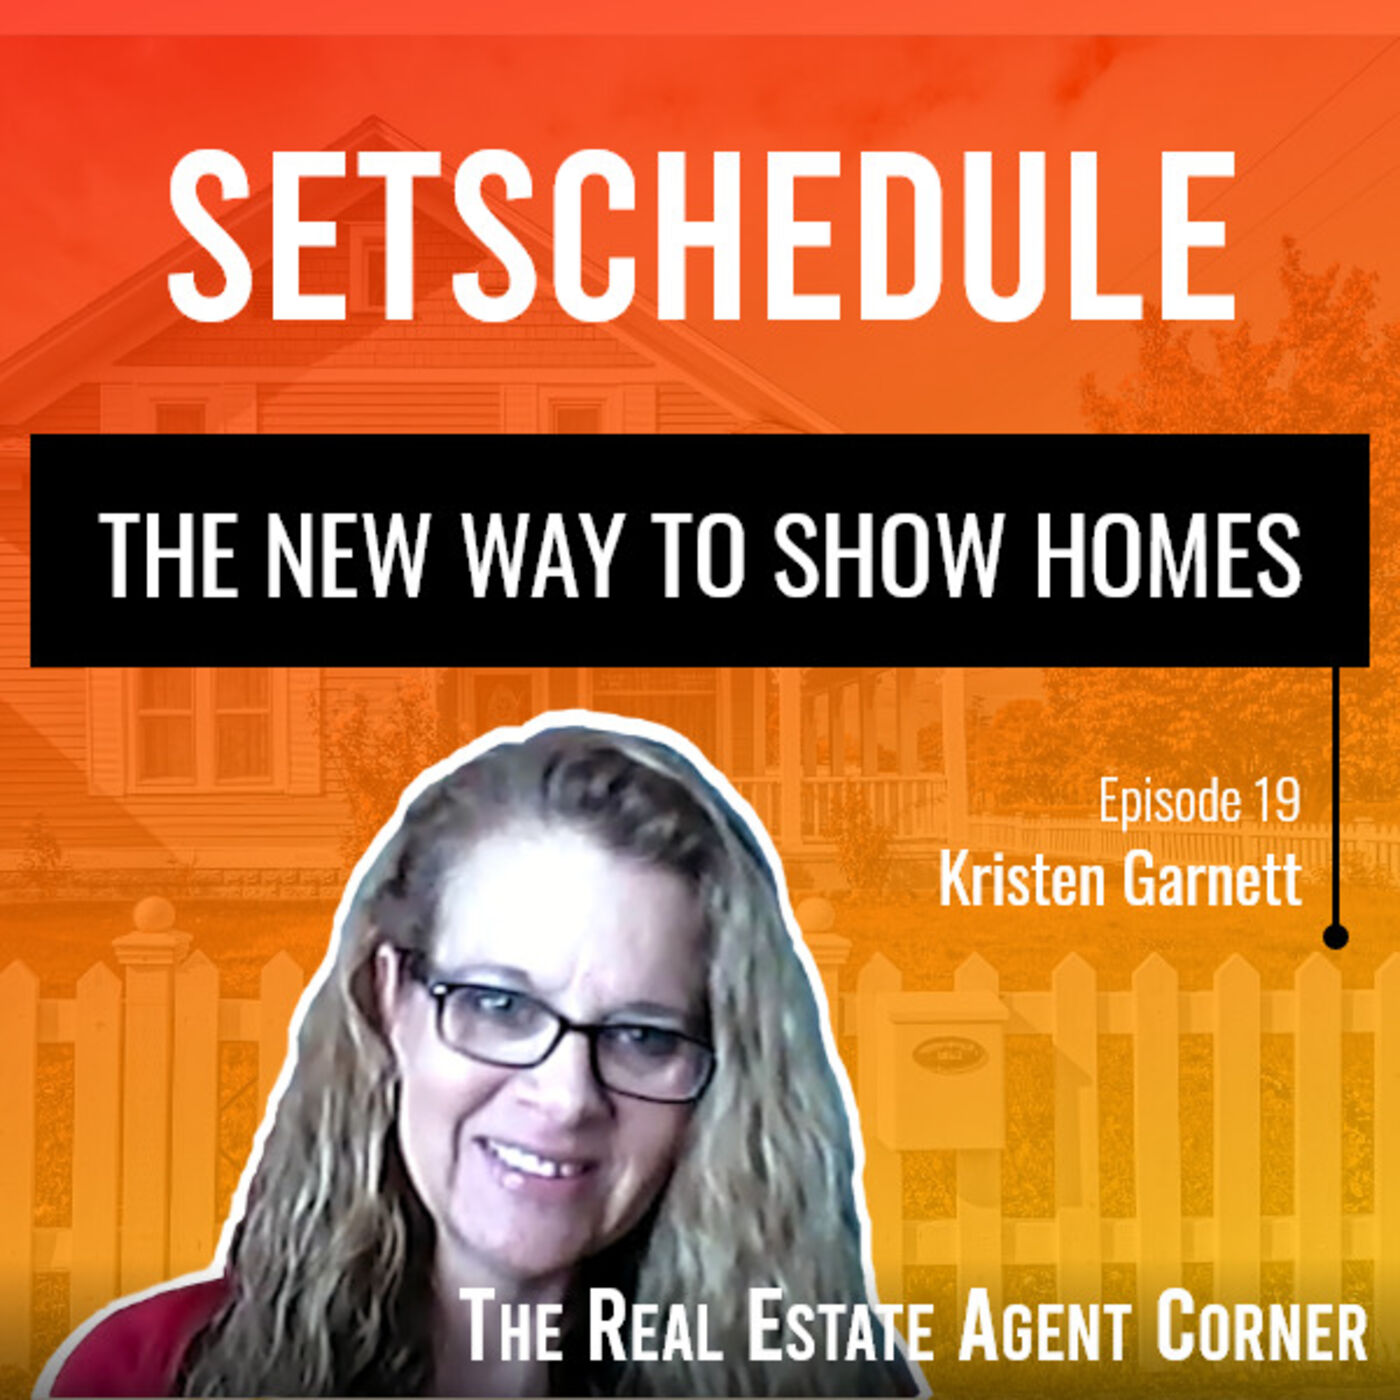 Be prepared for a new way to show homes -  Kristen Garnett